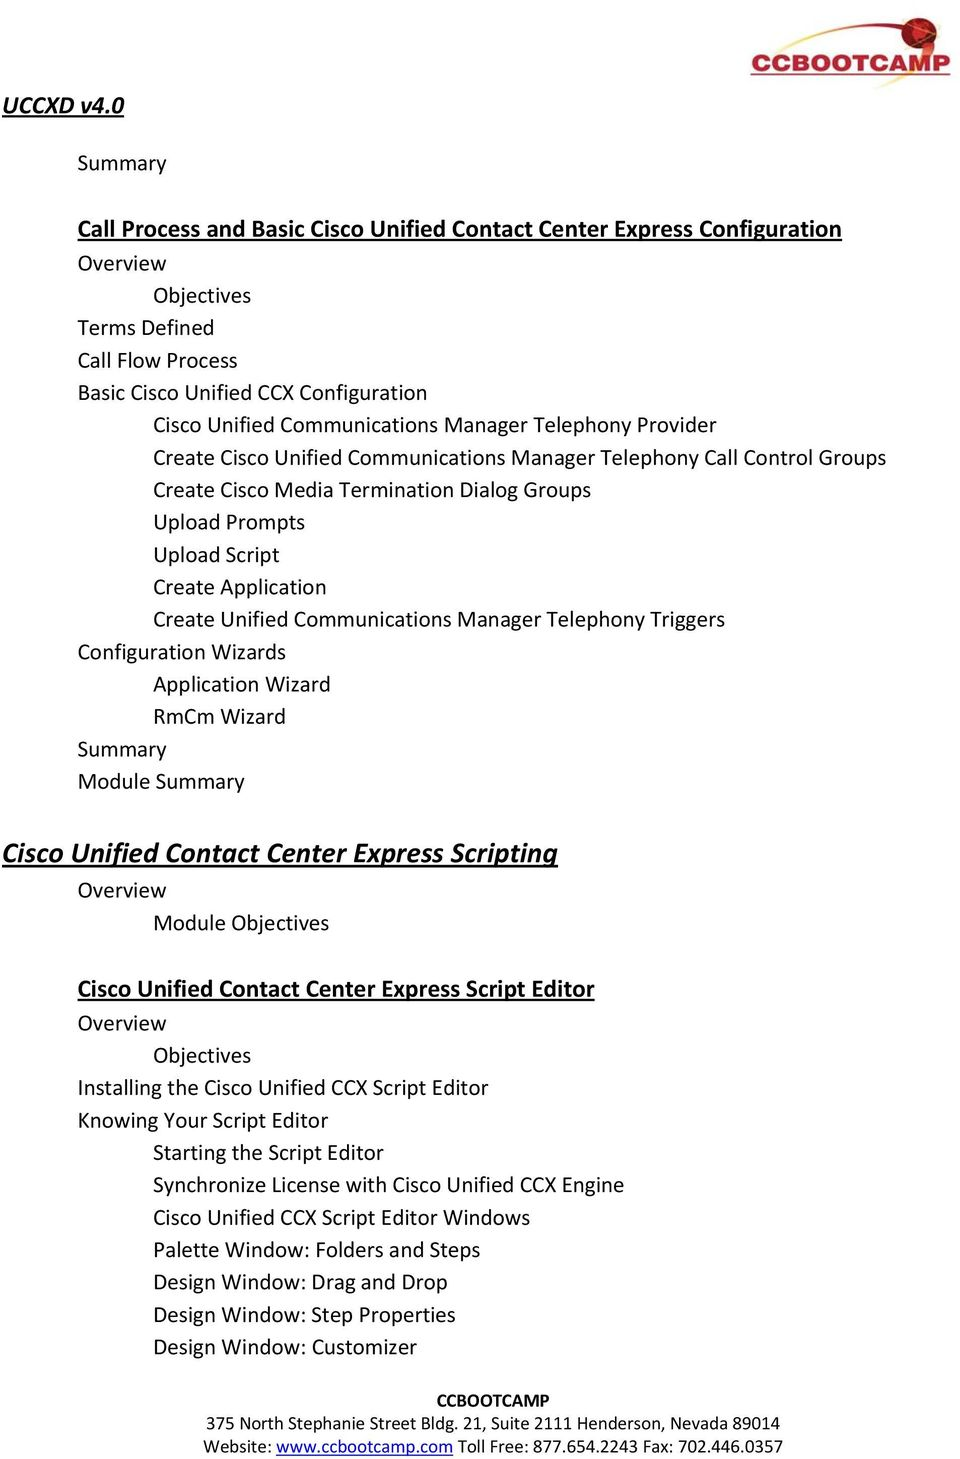 Manager Telephony Triggers Configuration Wizards Application Wizard RmCm Wizard Module Cisco Unified Contact Center Express Scripting Module Cisco Unified Contact Center Express Script Editor